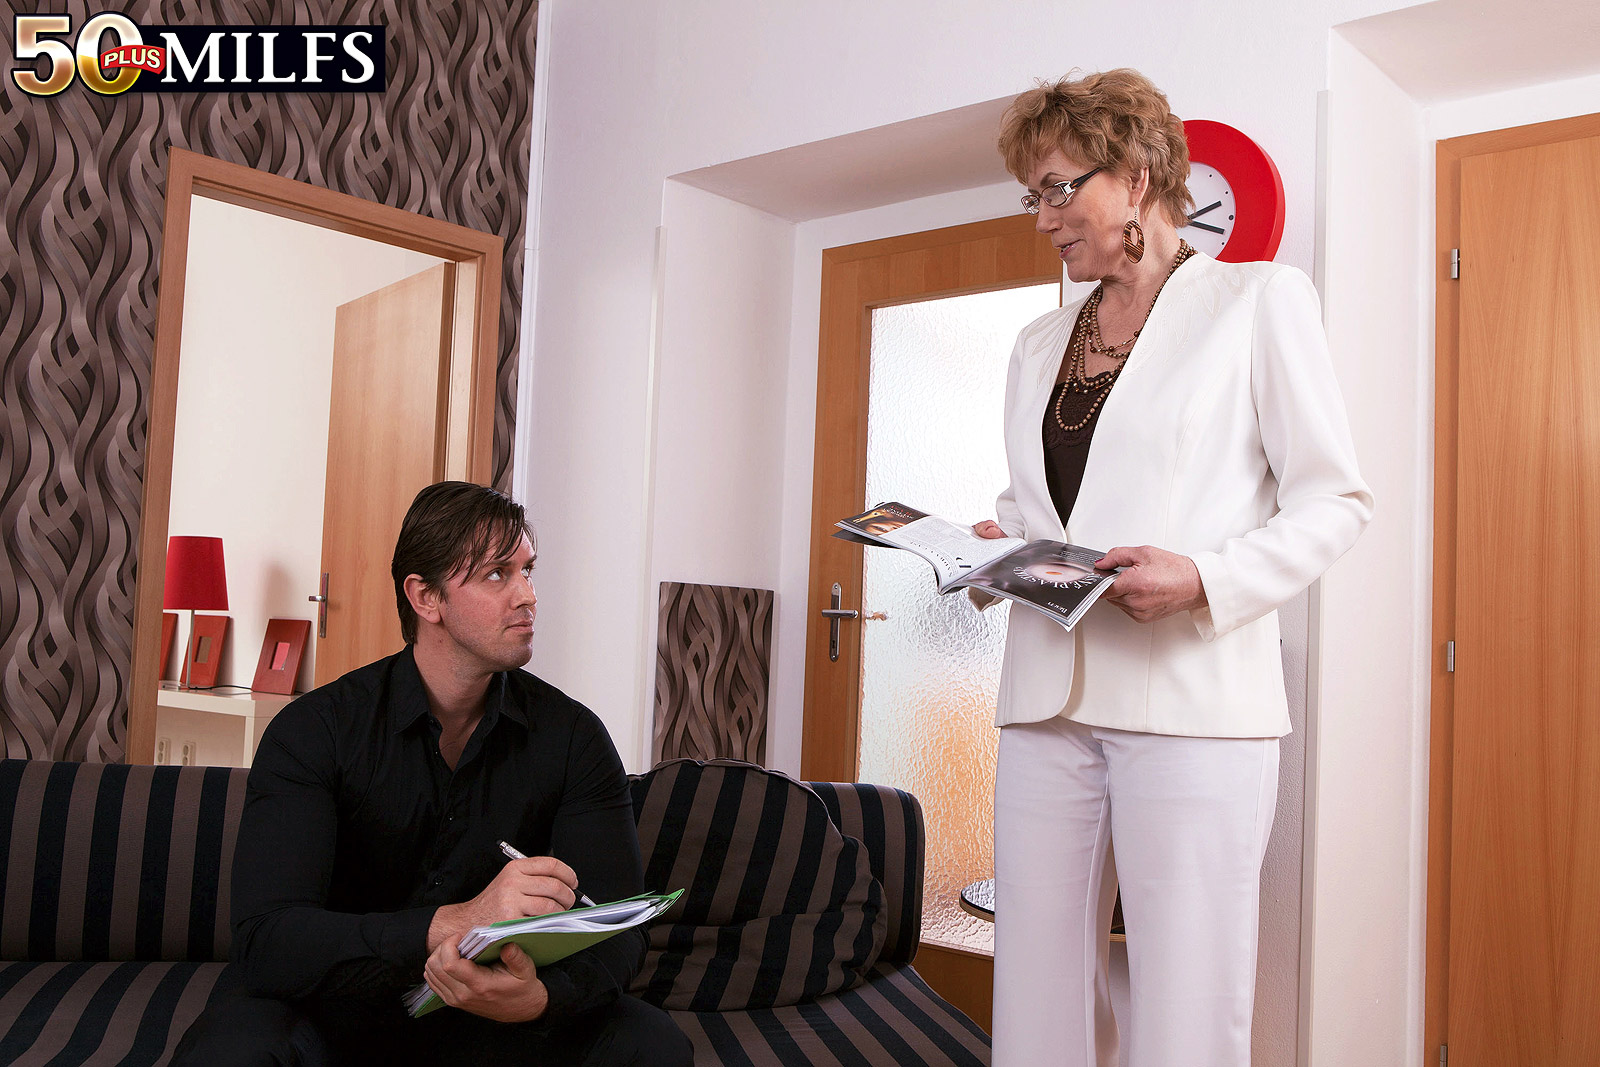 Gerogina a 60 years old business granny makes y young assistant cum inside her ass and pussy